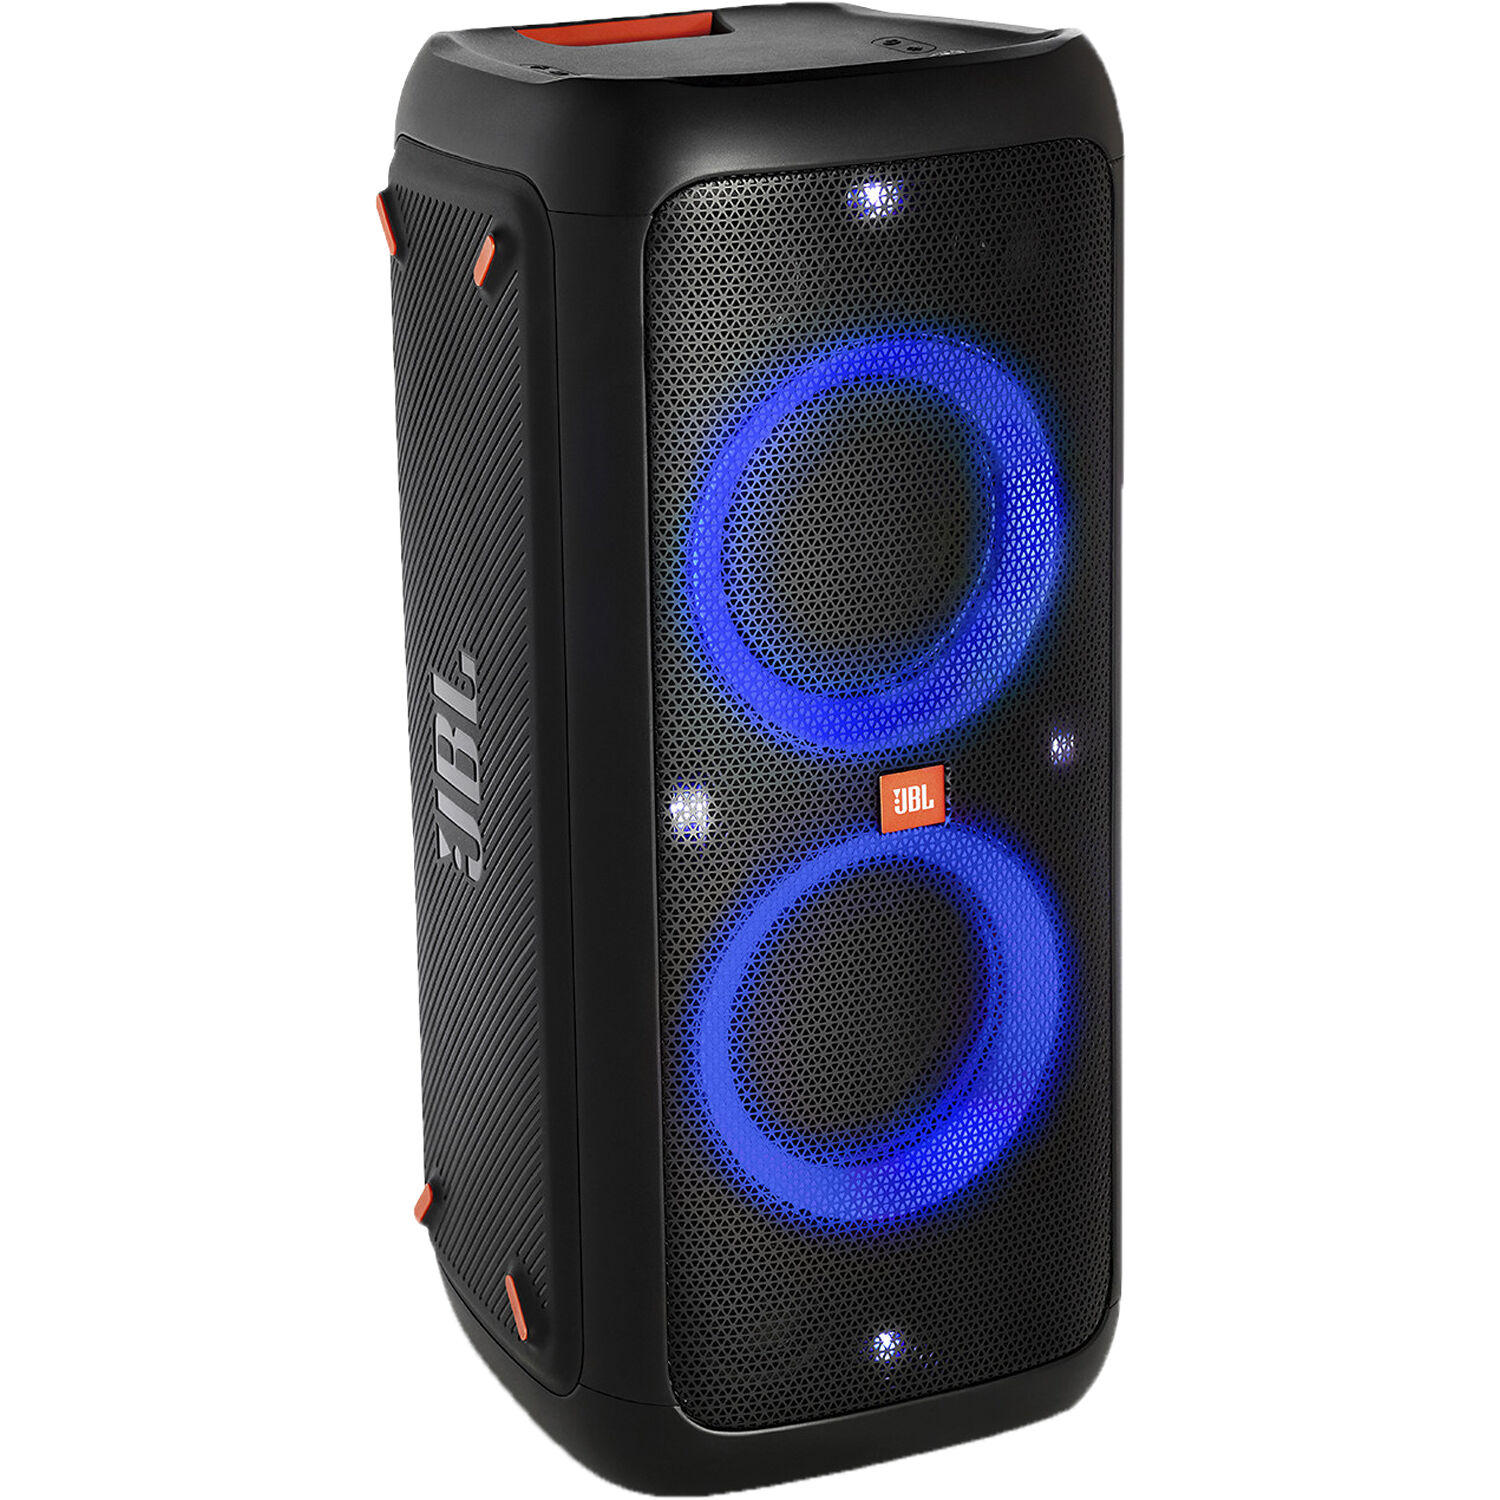 jbl partybox 200 bluetooth speaker jblpartybox200am b h photo